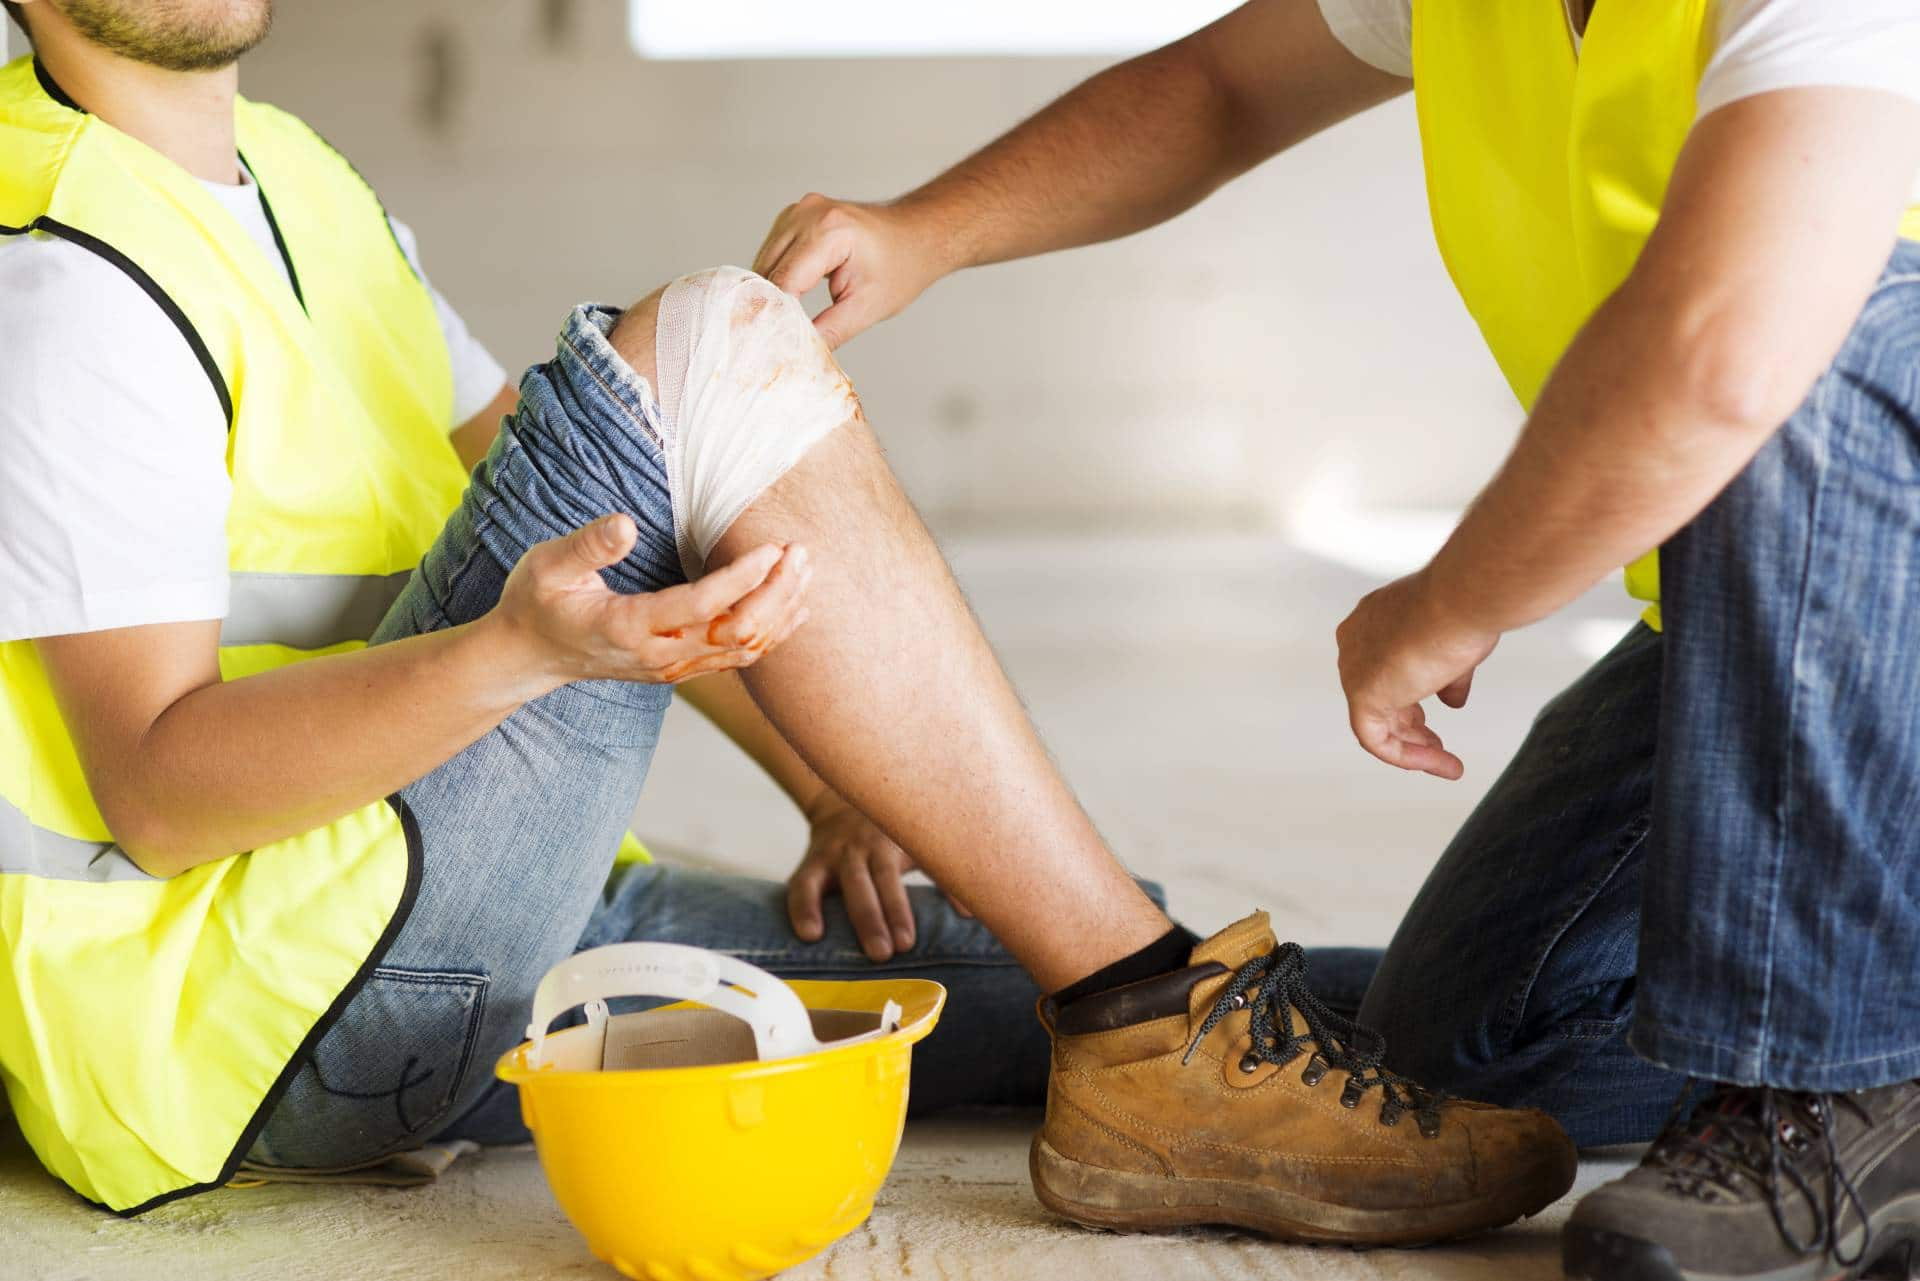 Injured on the job? Schedule a free consultation with our personal injury lawyers at the Angell Law Firm in Peachtree City, Georgia.